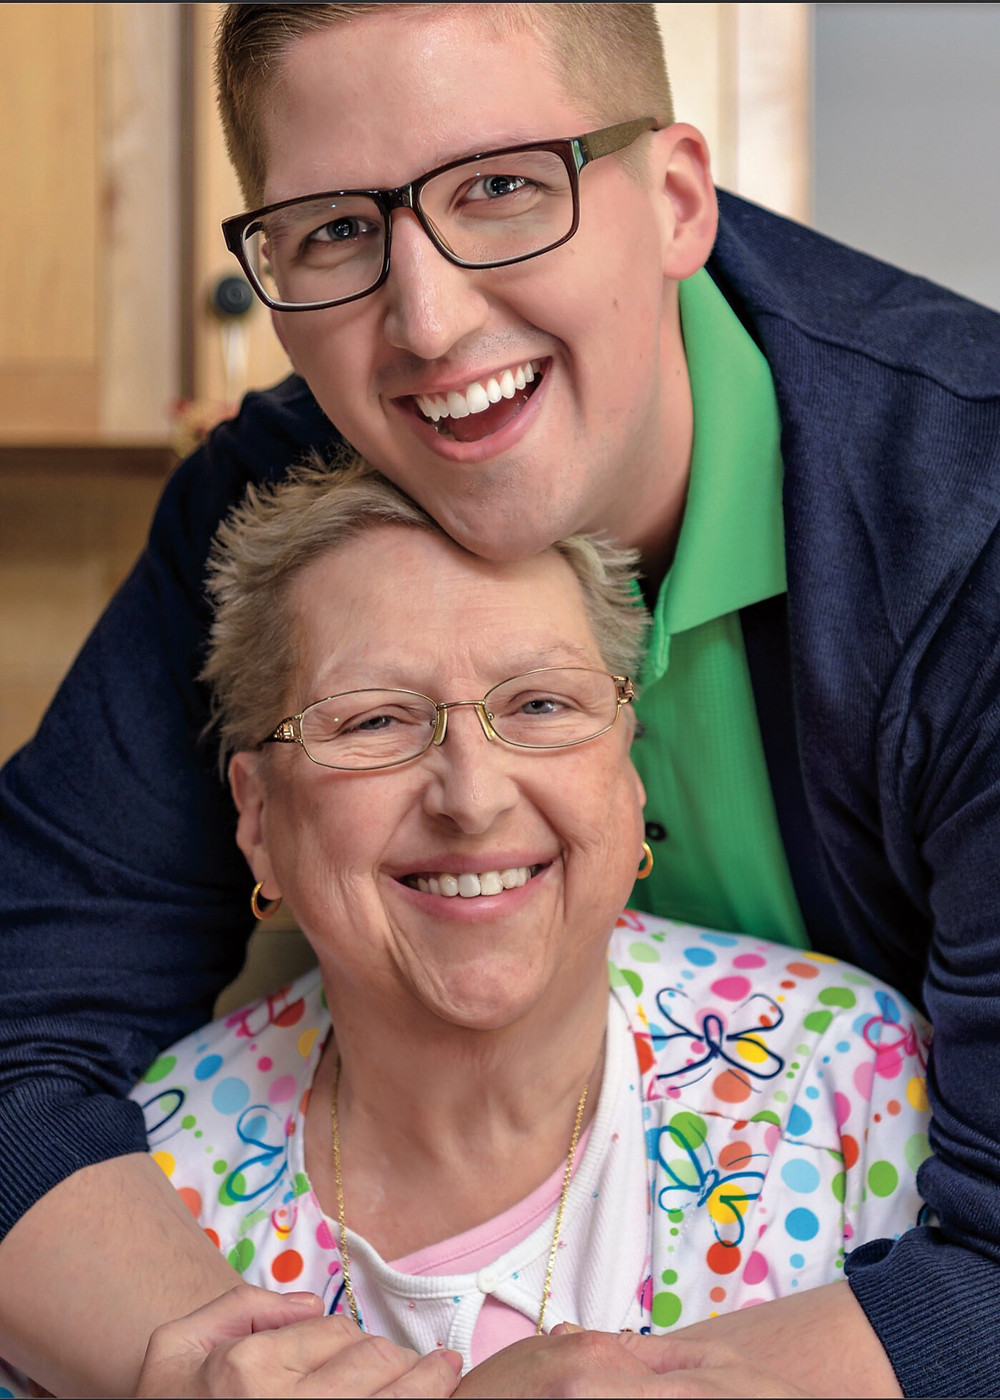 JOY FOR LIFE: Chris and his mom Barbara know that a positive attitude makes all the difference.